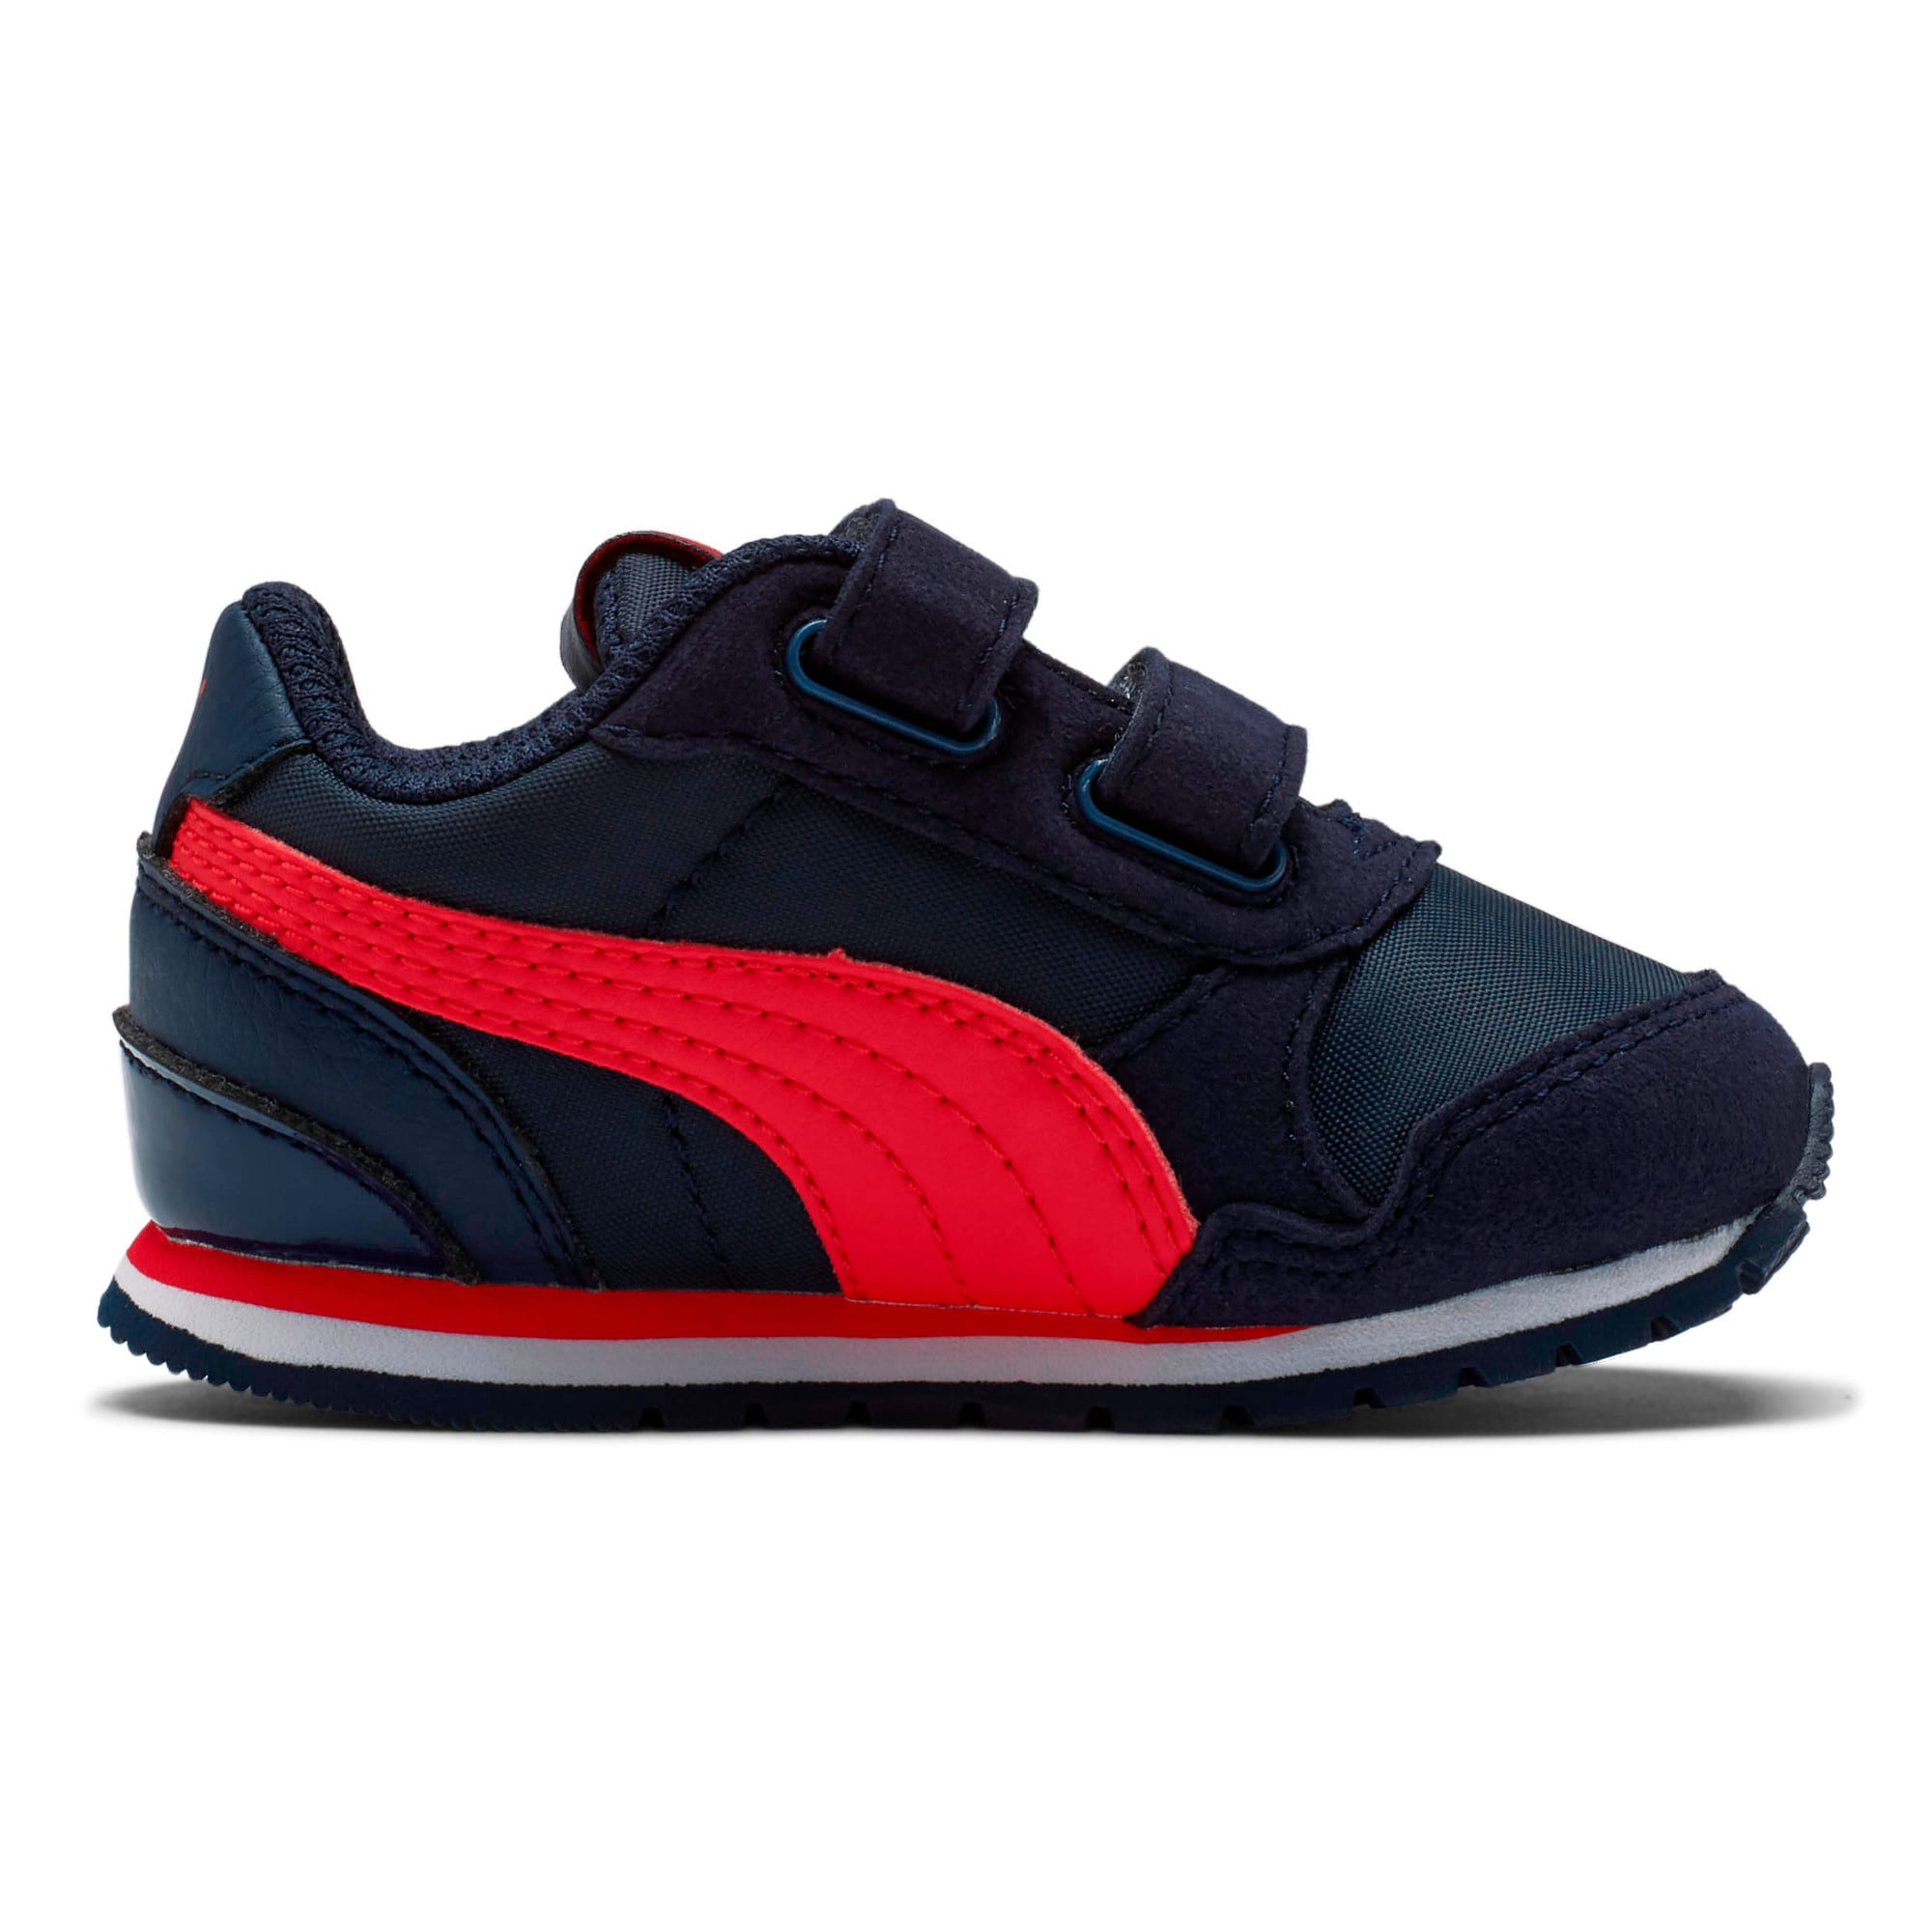 Thumbnail 5 of ST Runner V2 V Toddler Shoes, Peacoat-Ribbon Red, medium